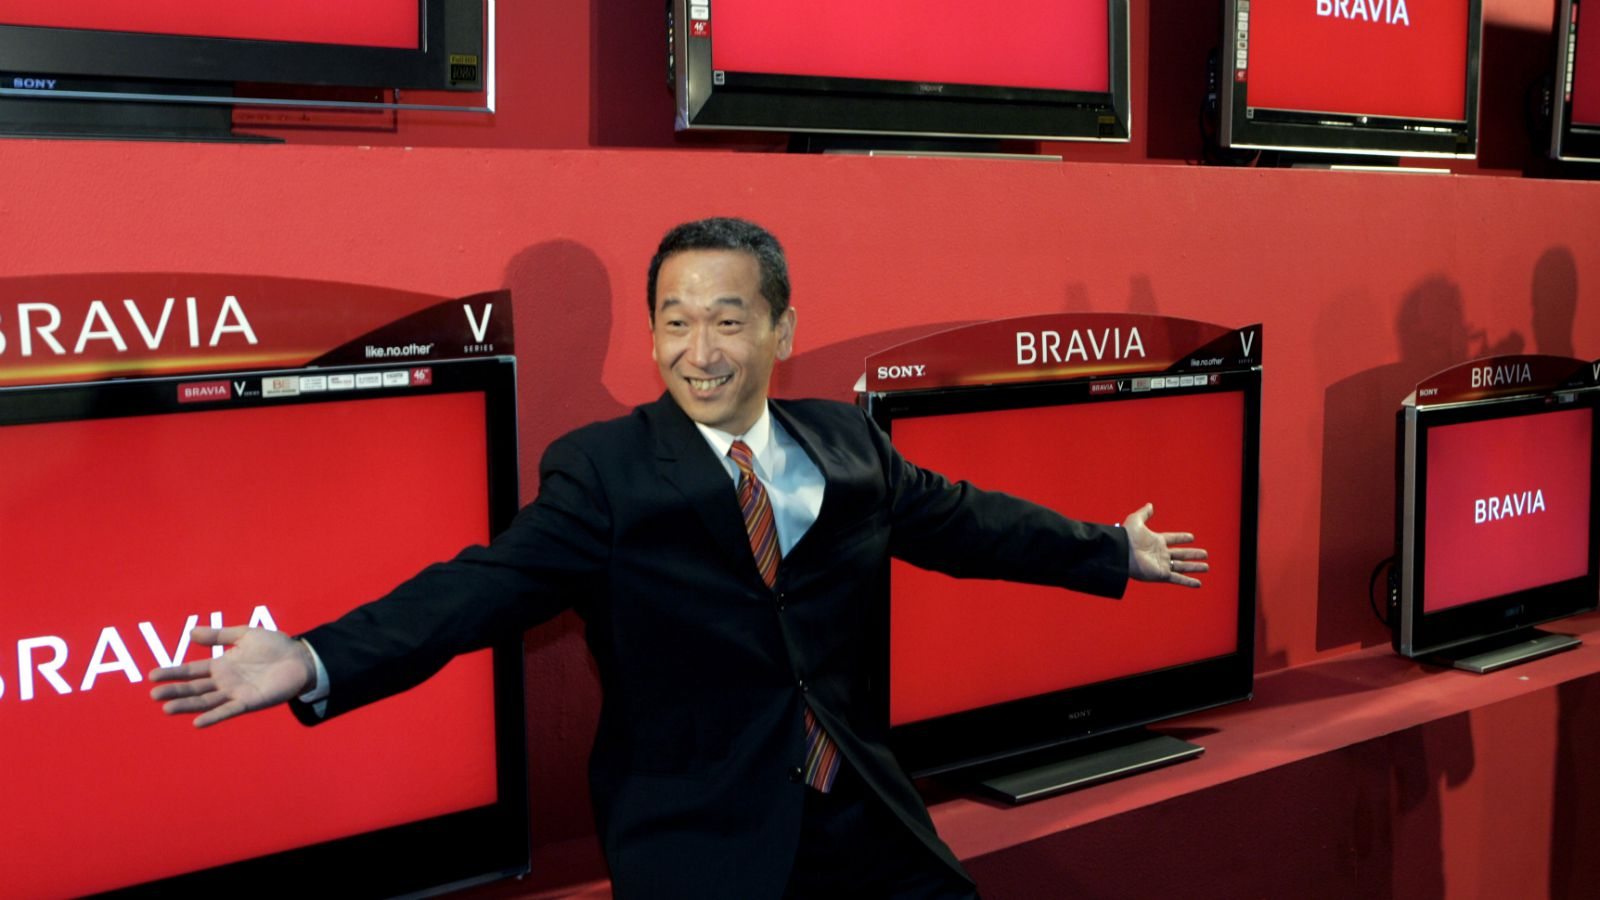 Sony India Managing Director, Masaru Tamagawa, poses in front of Sony's newly launched LCD ranges for Indian market, in New Delhi, India, Oct. 8, 2007. The new range is called BRAVIA, priced from US$ 717 to US$ 10253.